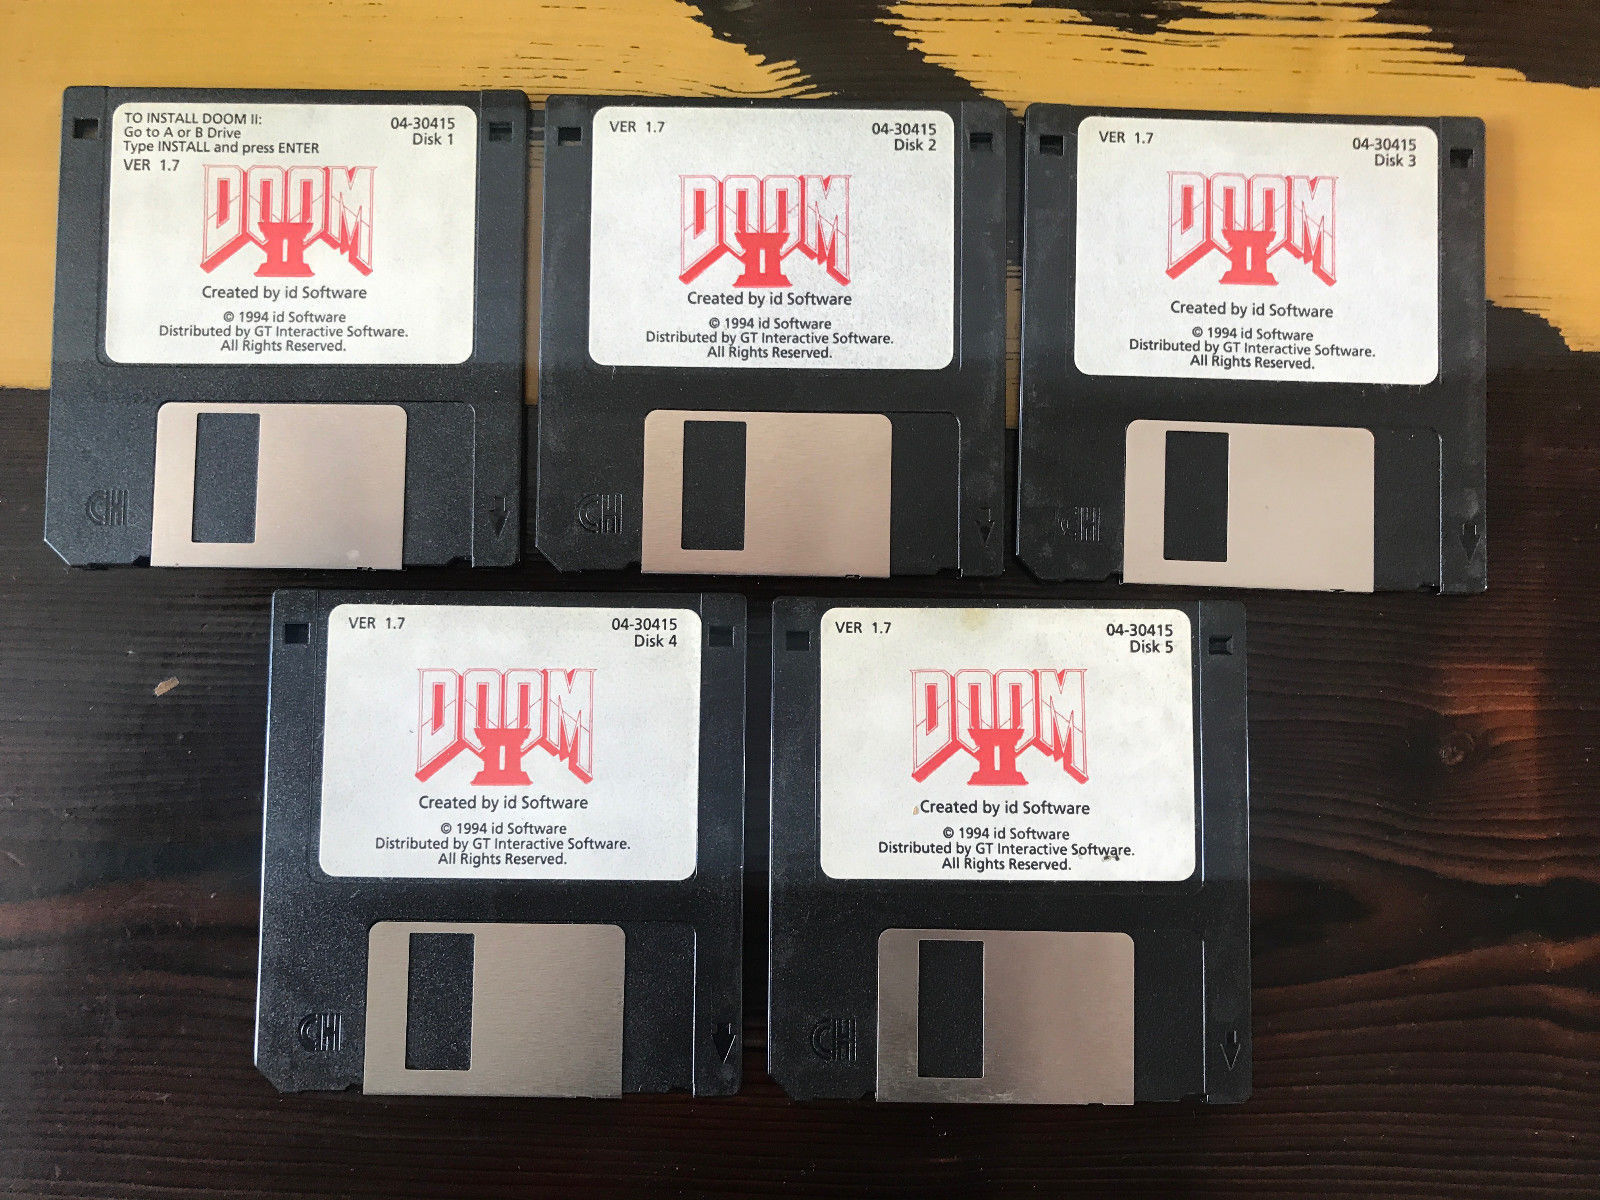 Doom 2 floppy disks